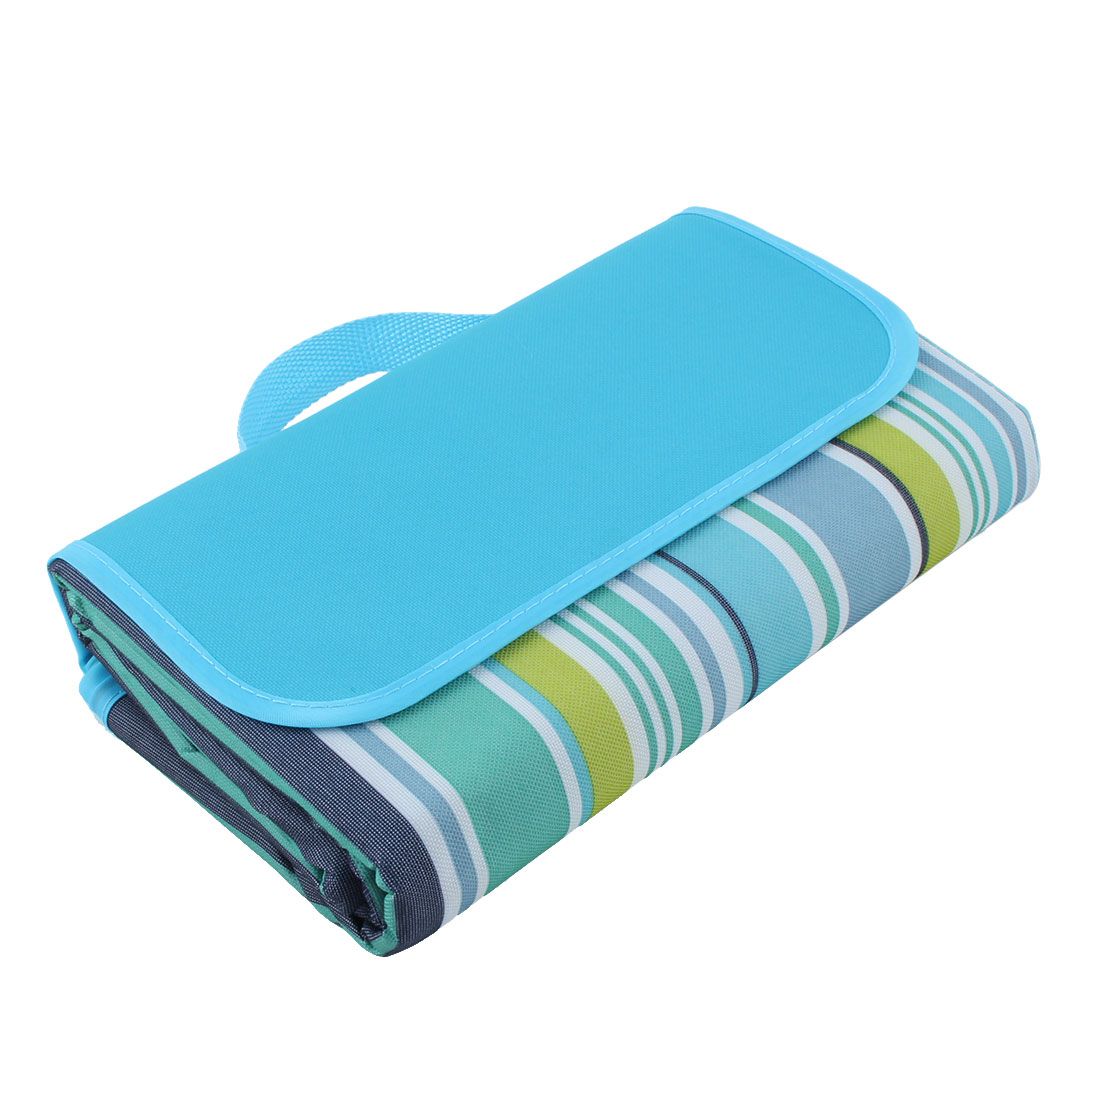 Outdoor Water Resistant Travel Camping Beach Mat Picnic Blanket Blue 180 X 150cm